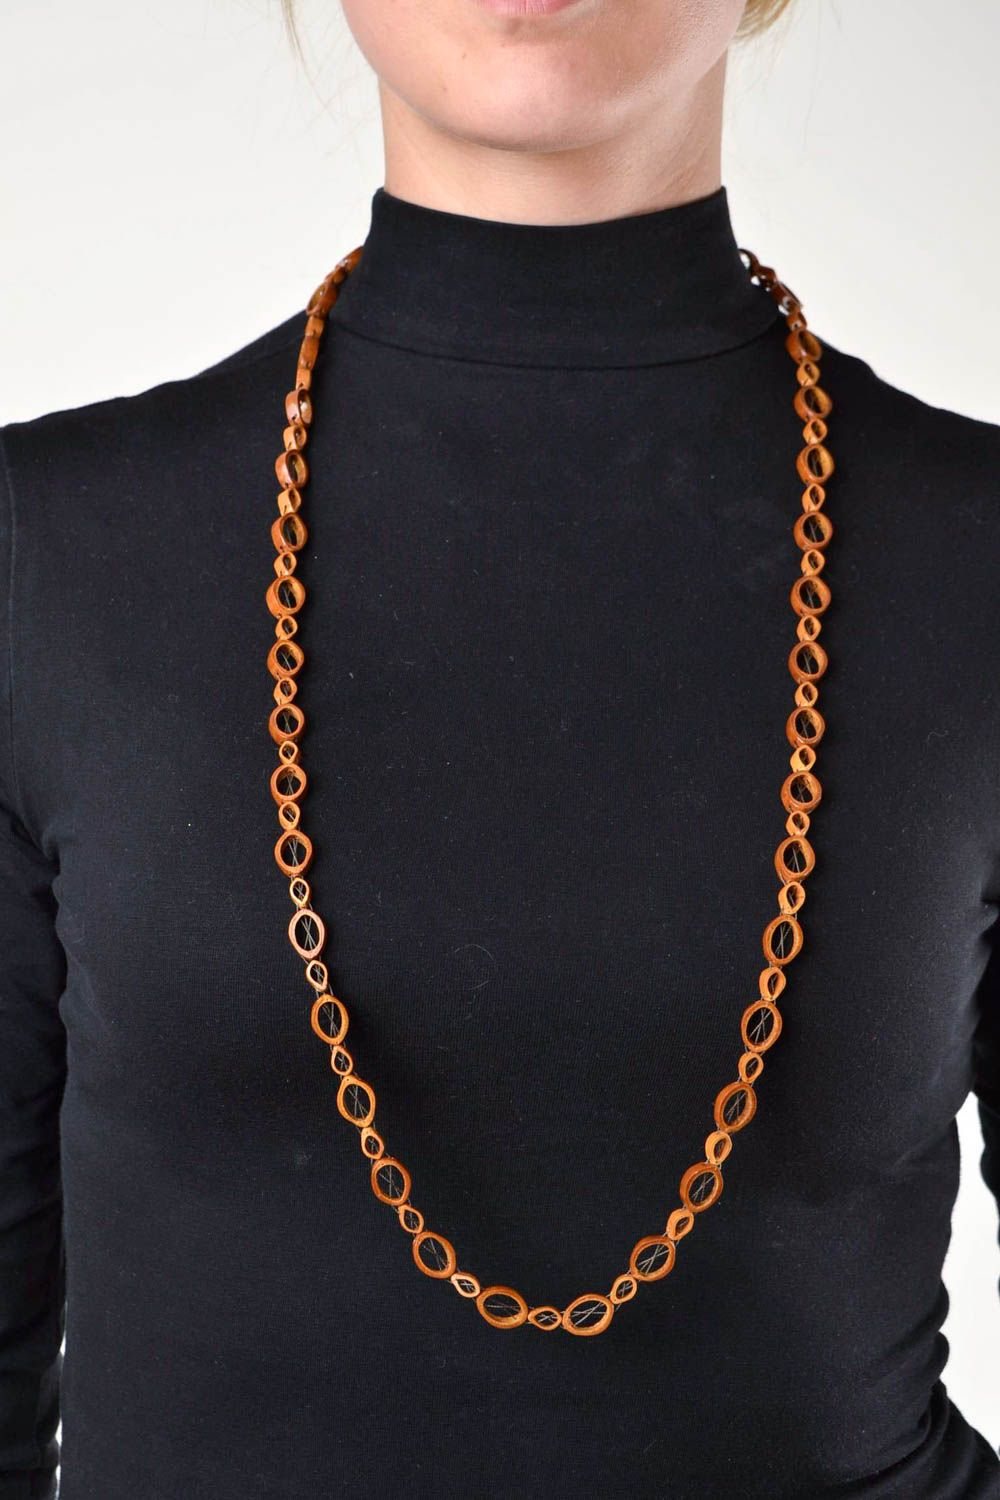 Handmade necklace long necklace beaded jewelry wooden jewelry gifts for women photo 1